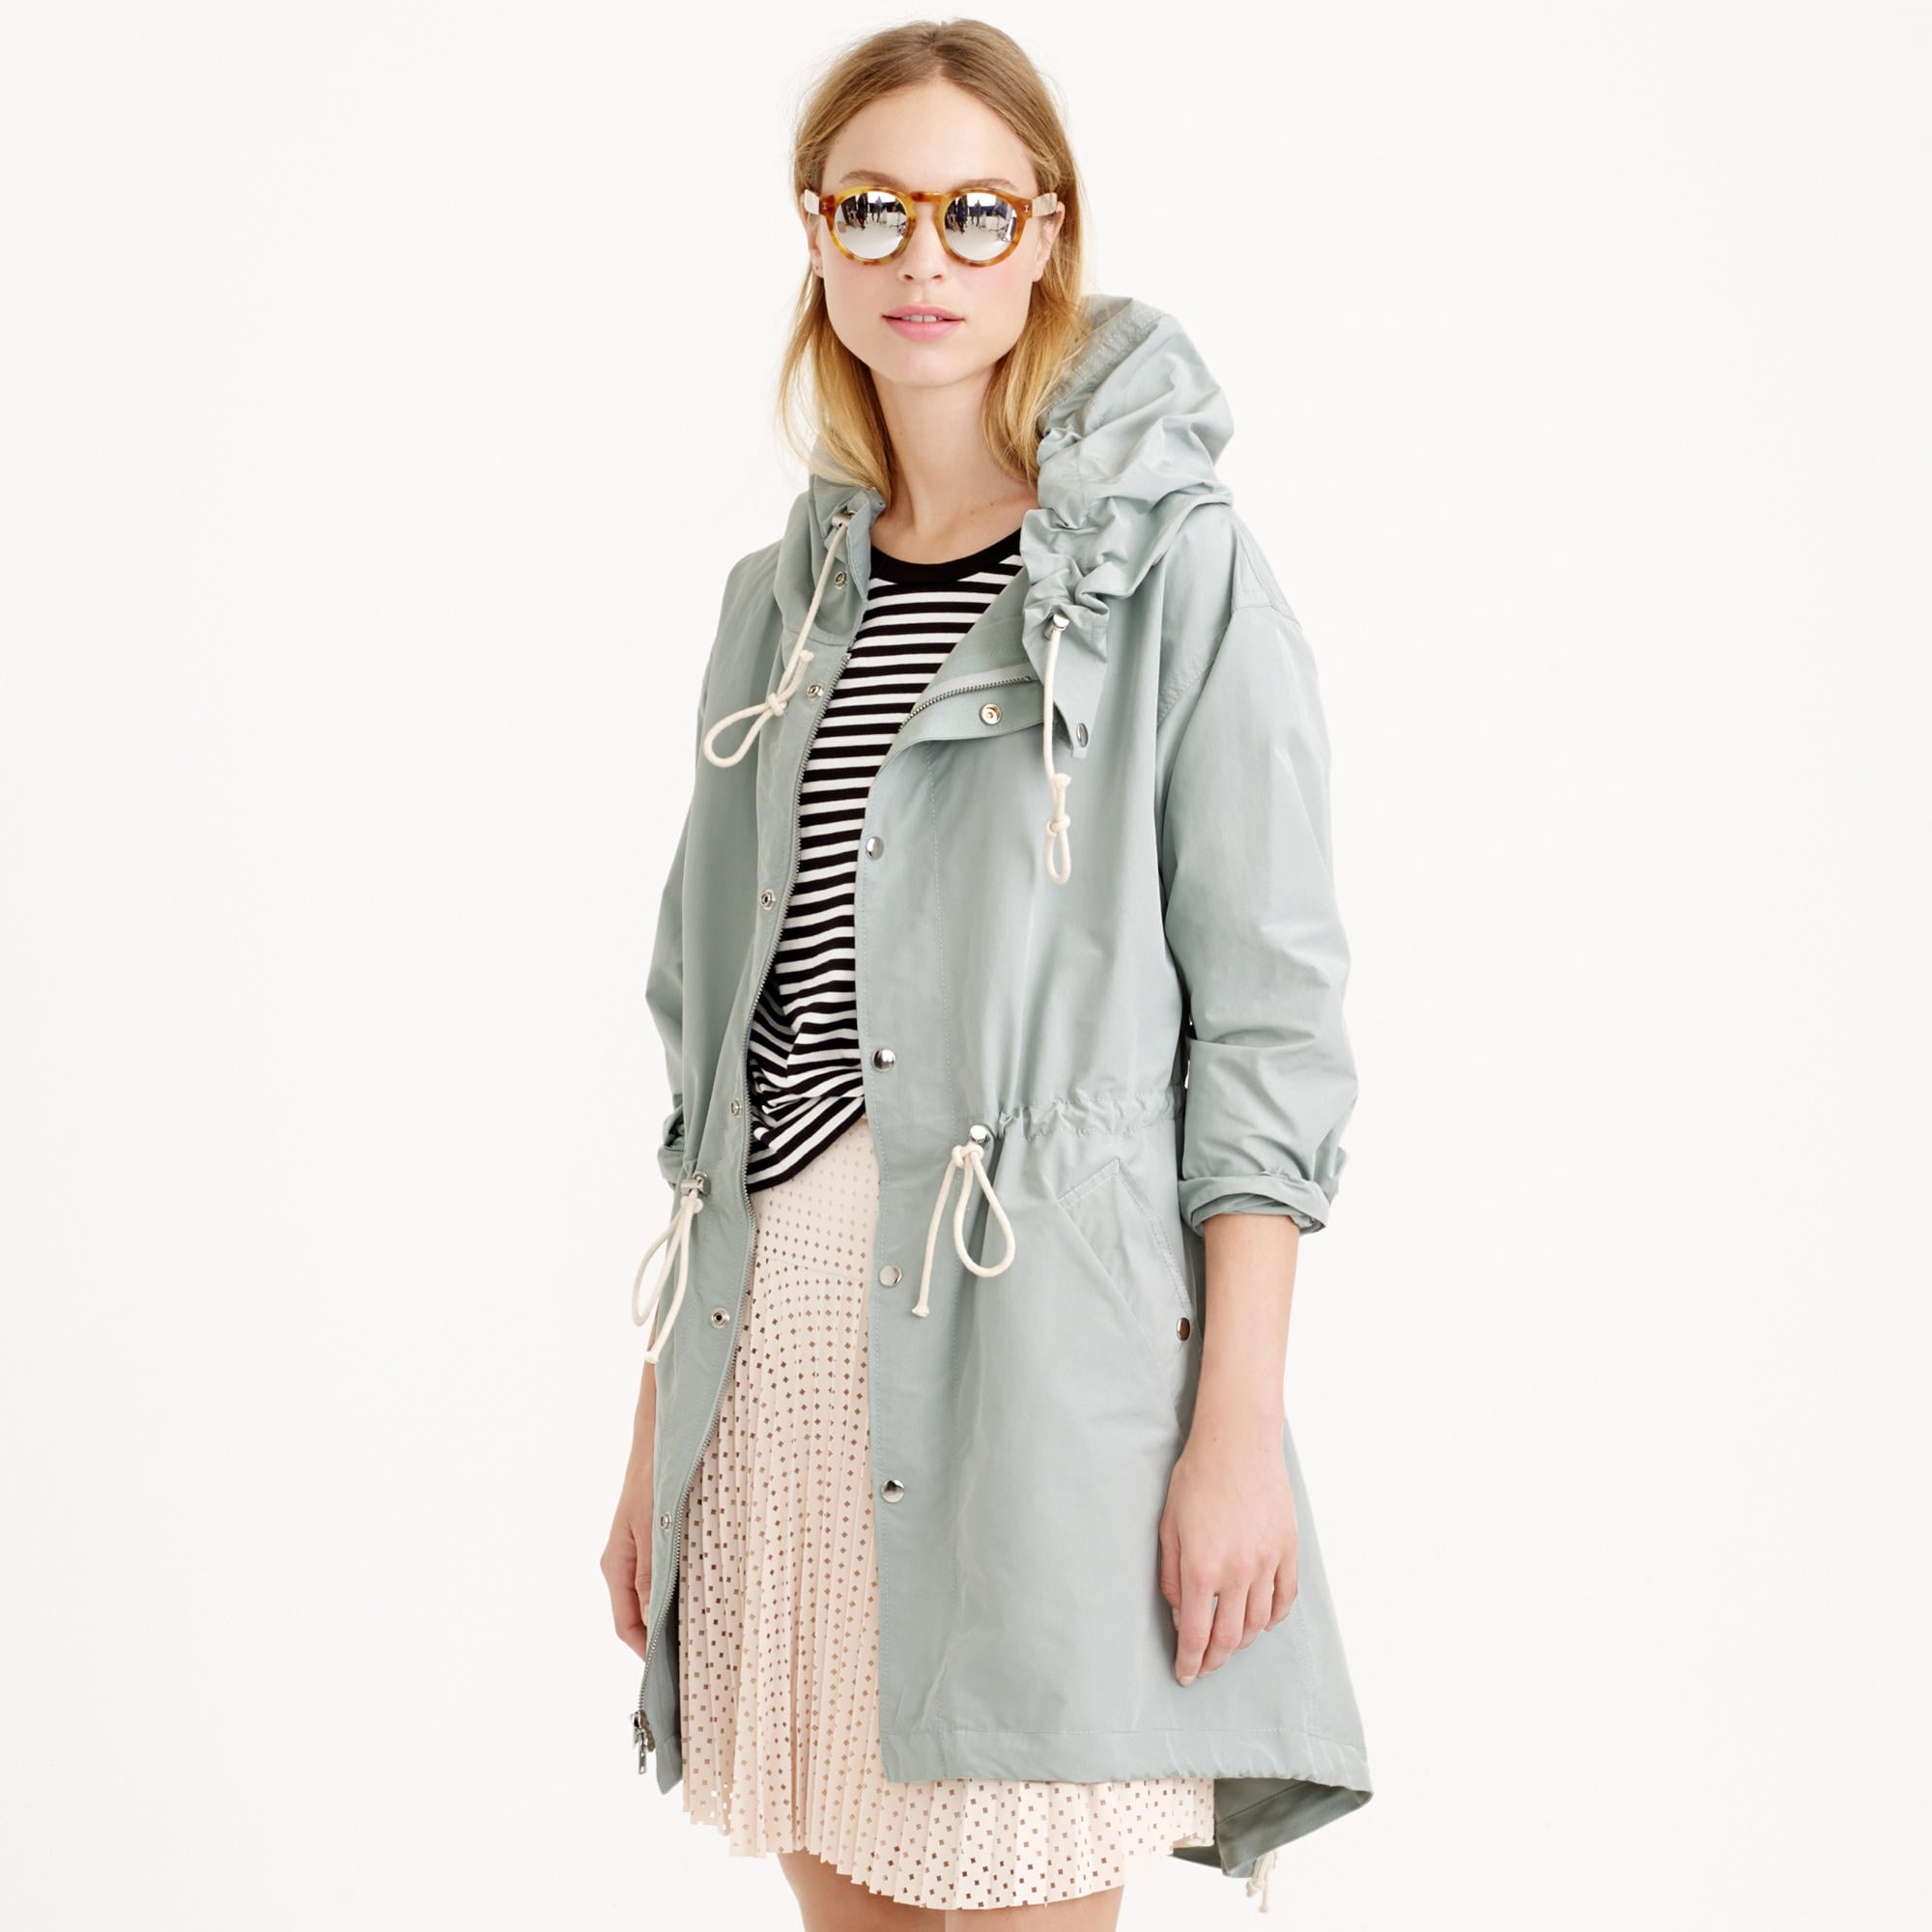 transitional spring coats 2015 popsugar fashion #0: 5fec0a7e mon coats